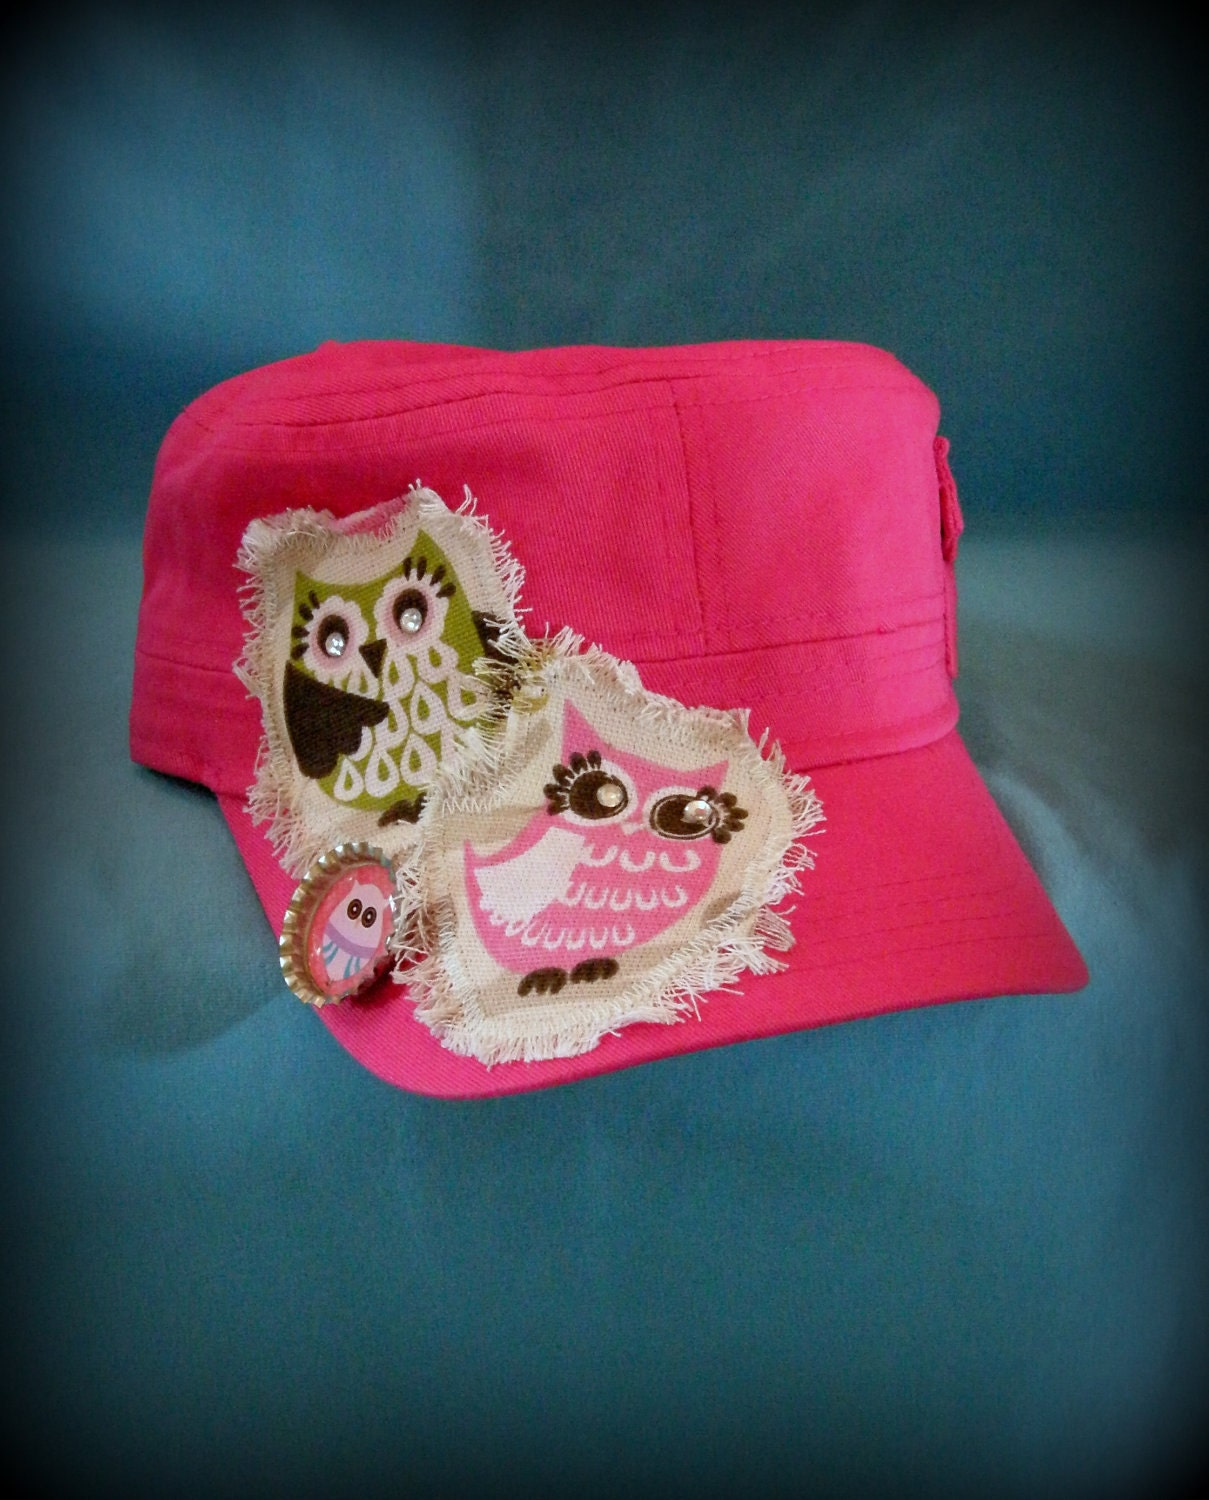 Ladies Pink Cadet Cap with Owls and added embellishments for great style and bling.